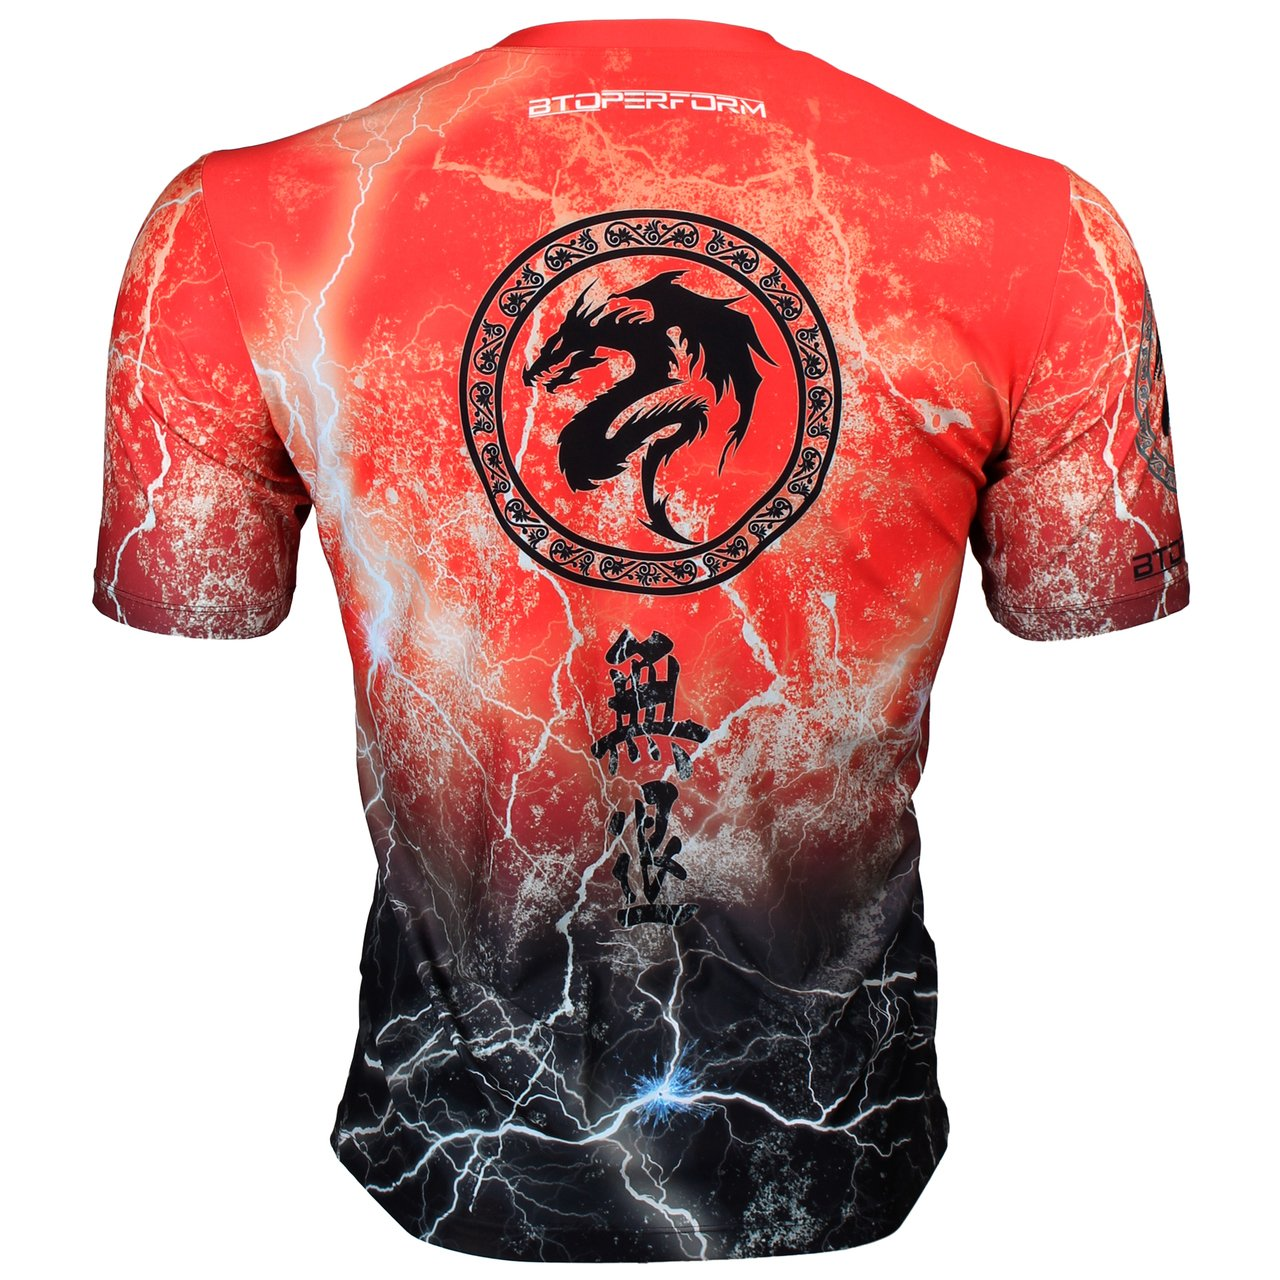 Btoperform Retreat Thunder Red Full Graphic Loose-Fit Crew Neck T-Shirts FR-303R